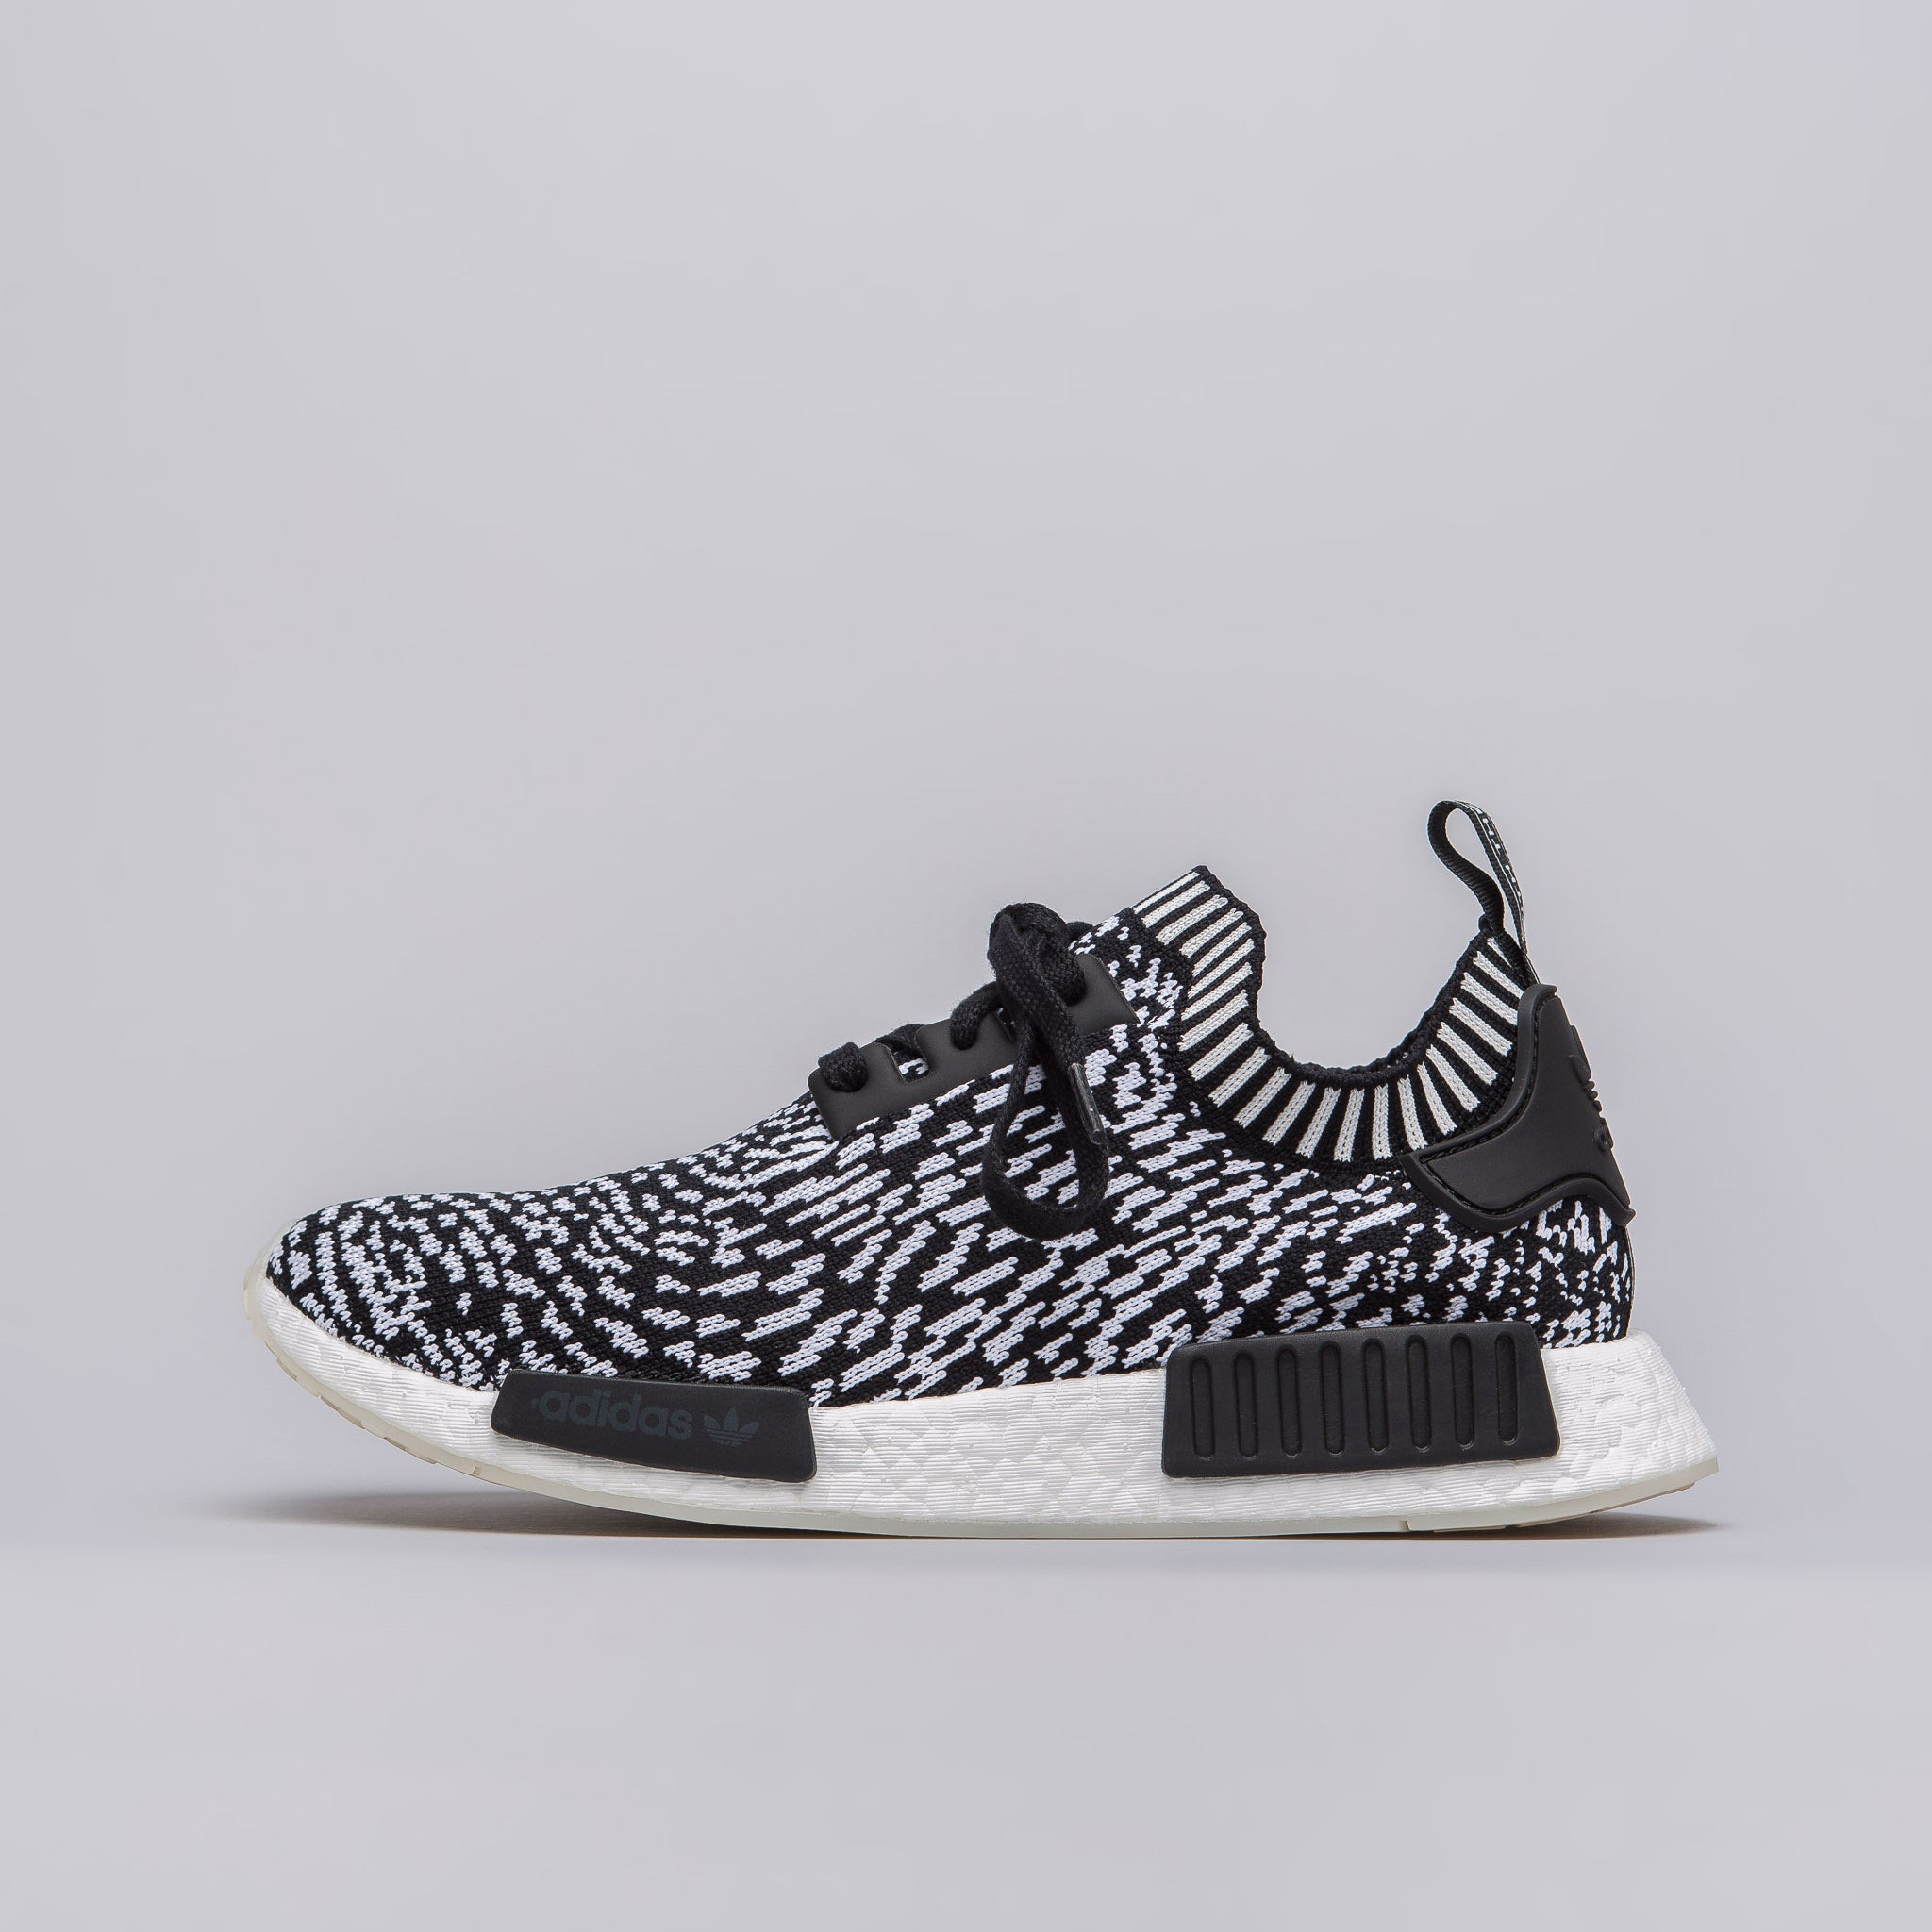 Adidas NMD R1 Glitch Camo White Black